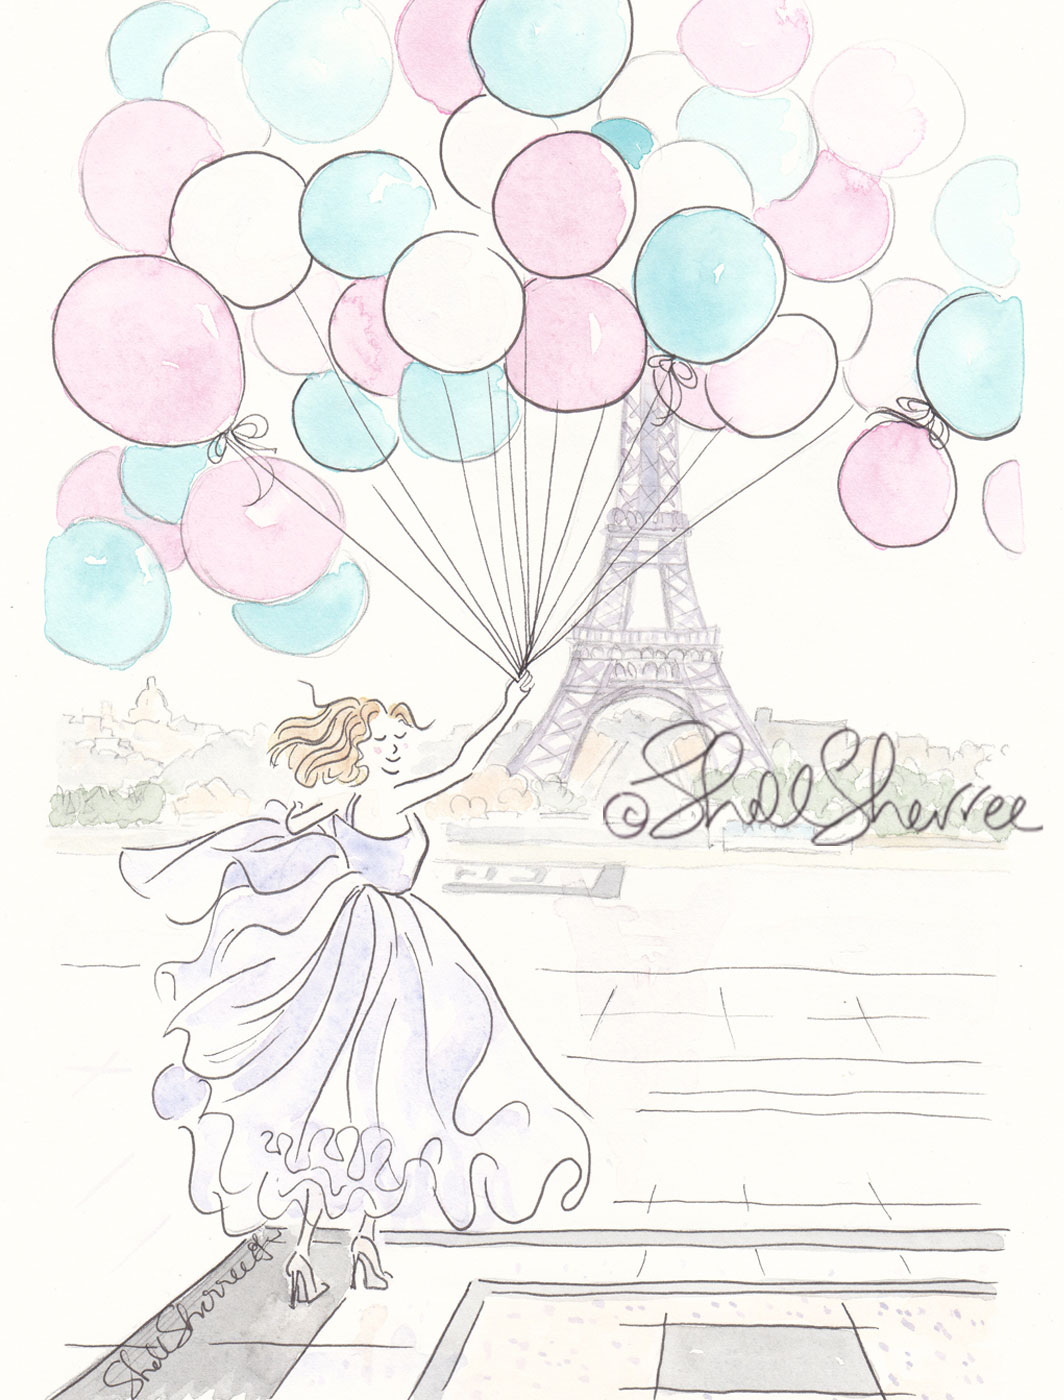 Eiffel Tower Paris, Balloons and Ballgowns fashion illustration © Shell Sherree